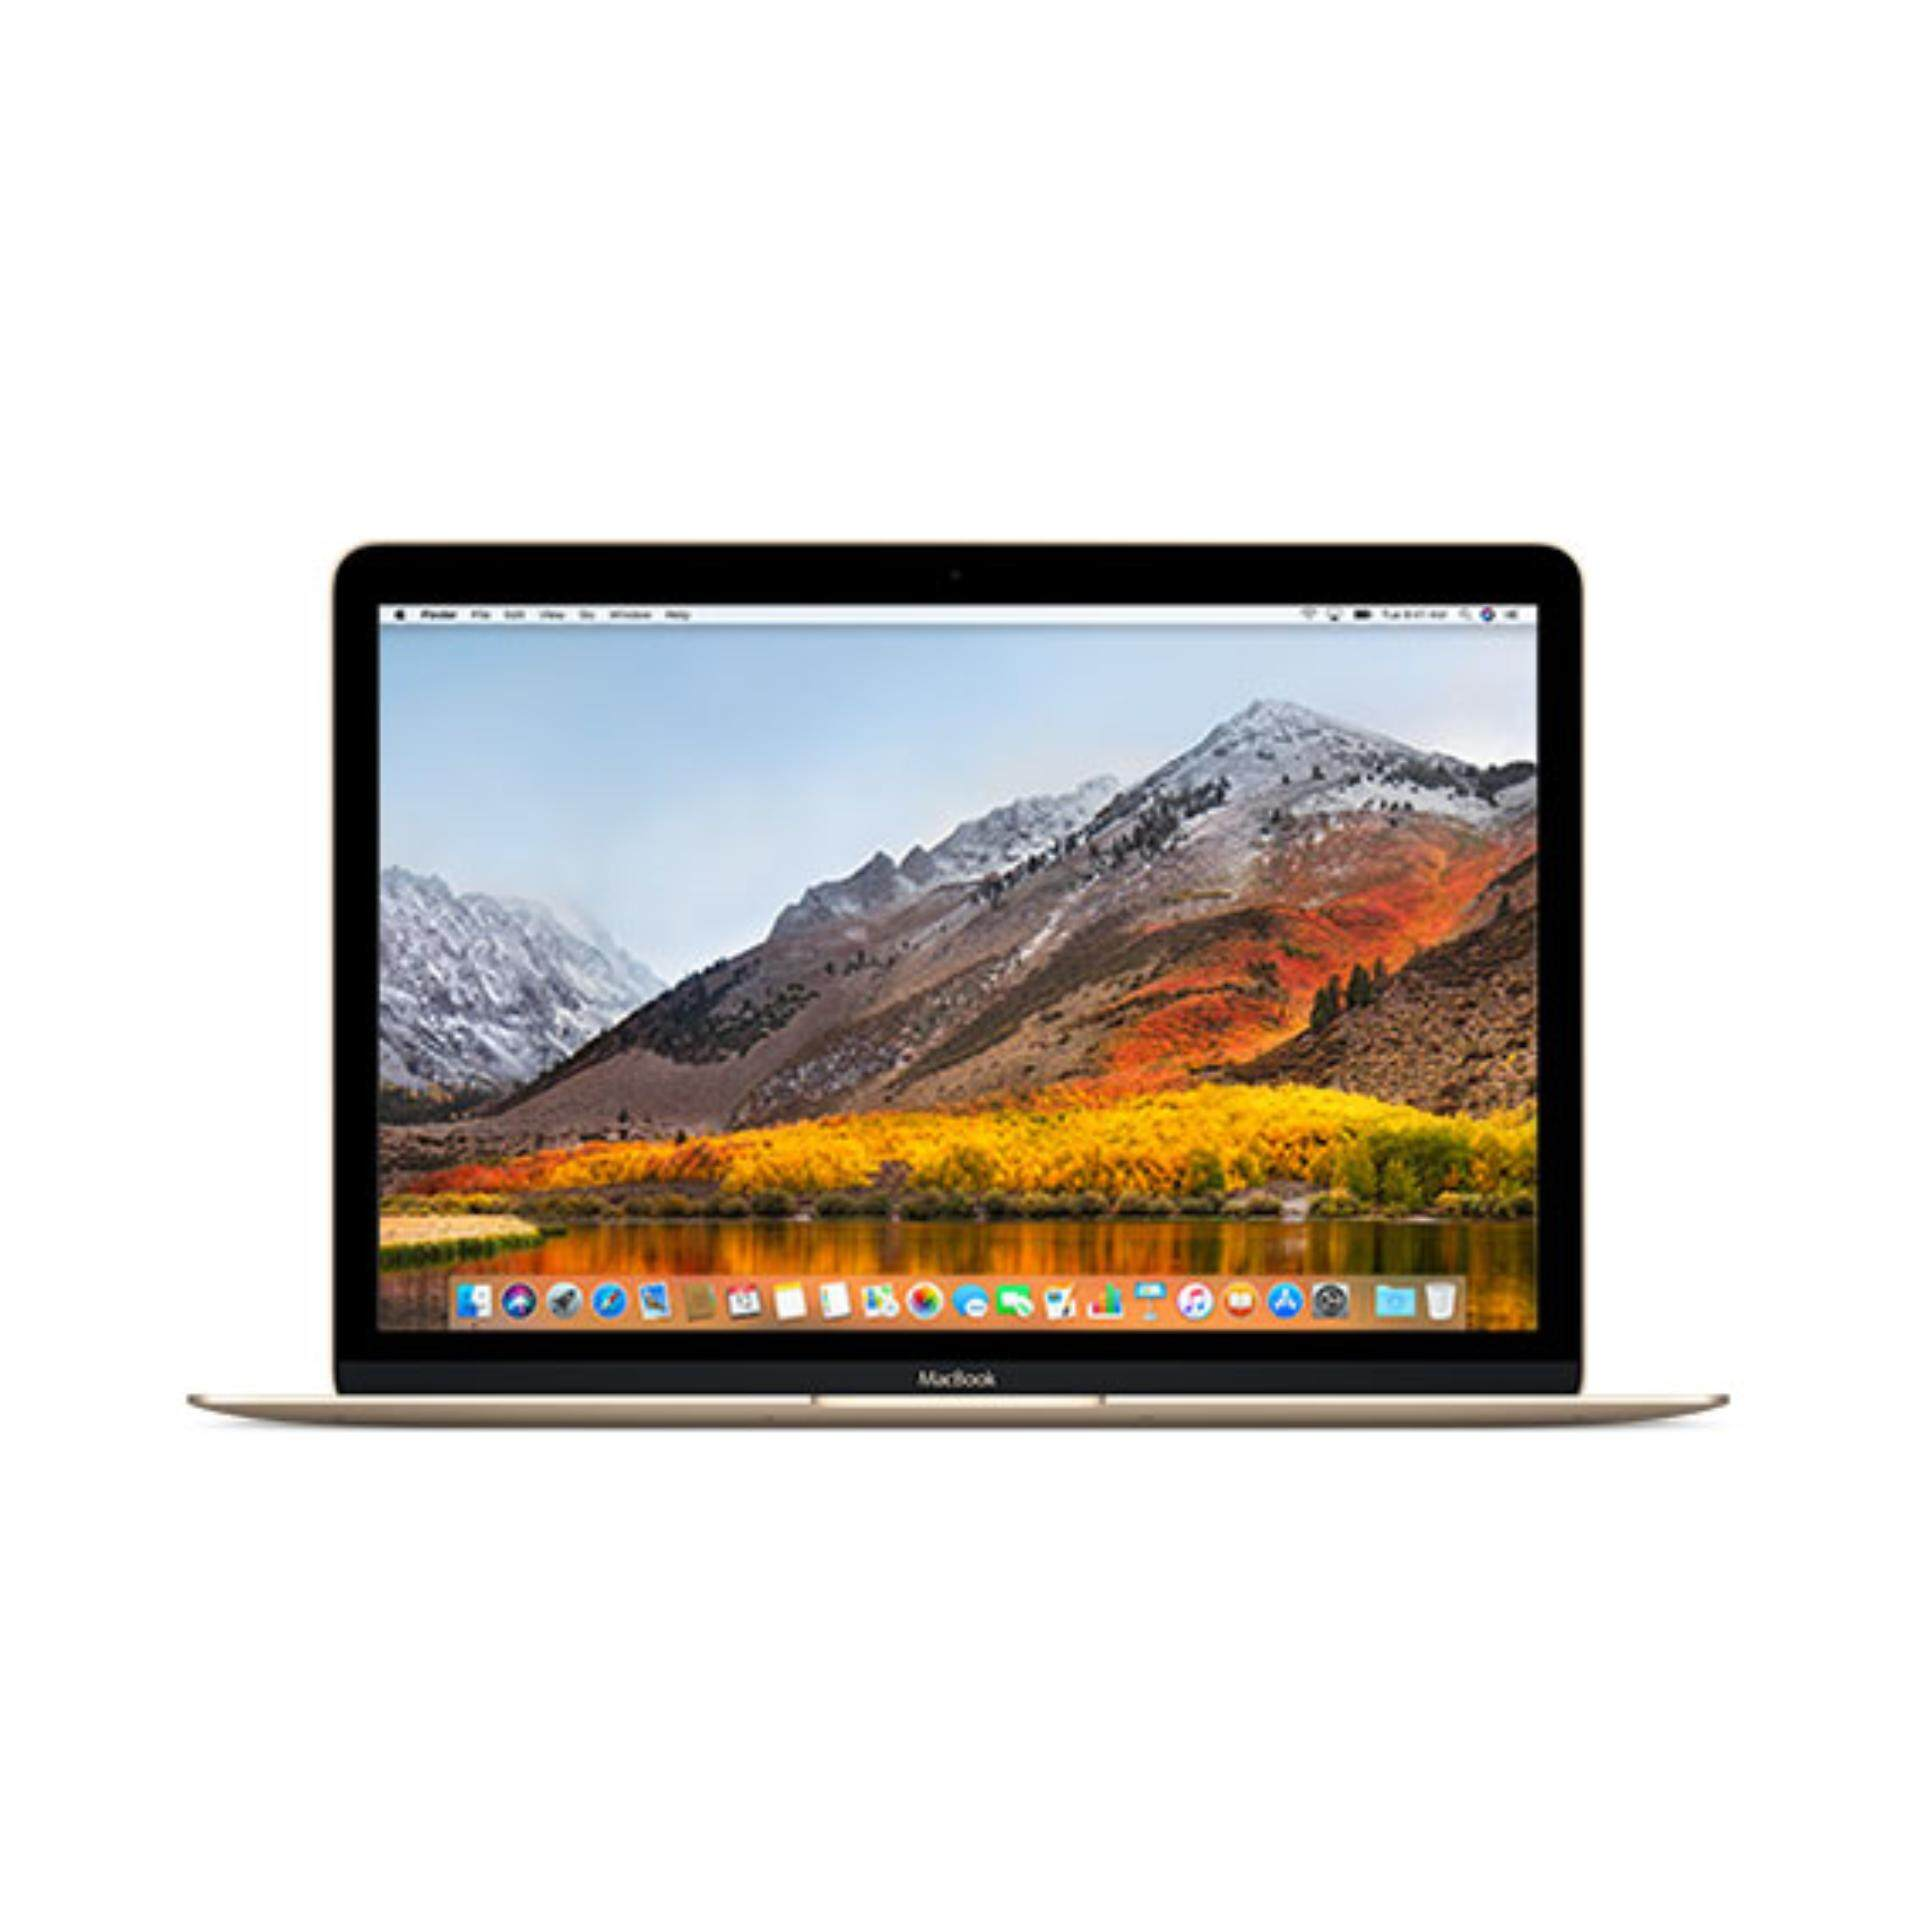 [2017 Model] Apple MacBook 12 (MNYK2ZP/A) 1.2GHz Intel m3/256GB - Gold Malaysia